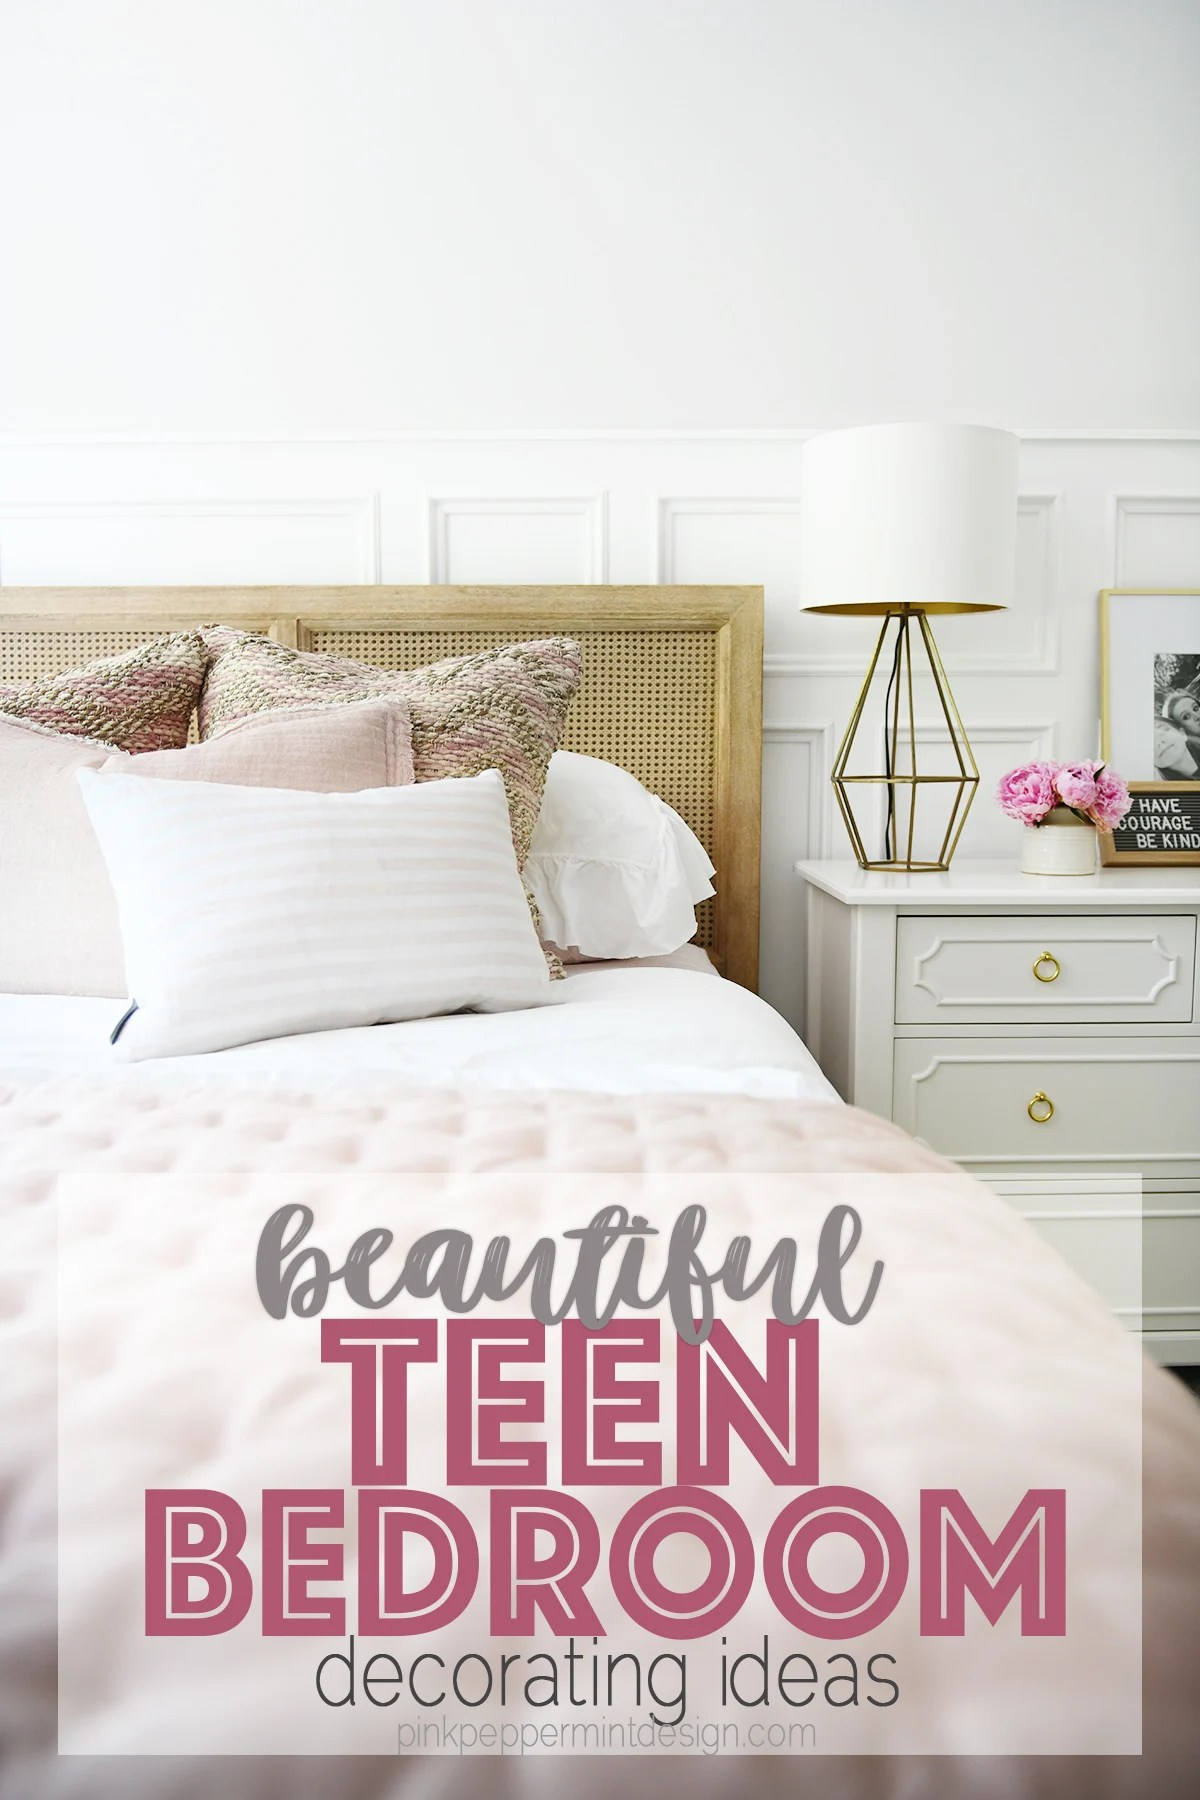 Cute Room Ideas for a Teenage Girl: Teen Bedroom Before and After